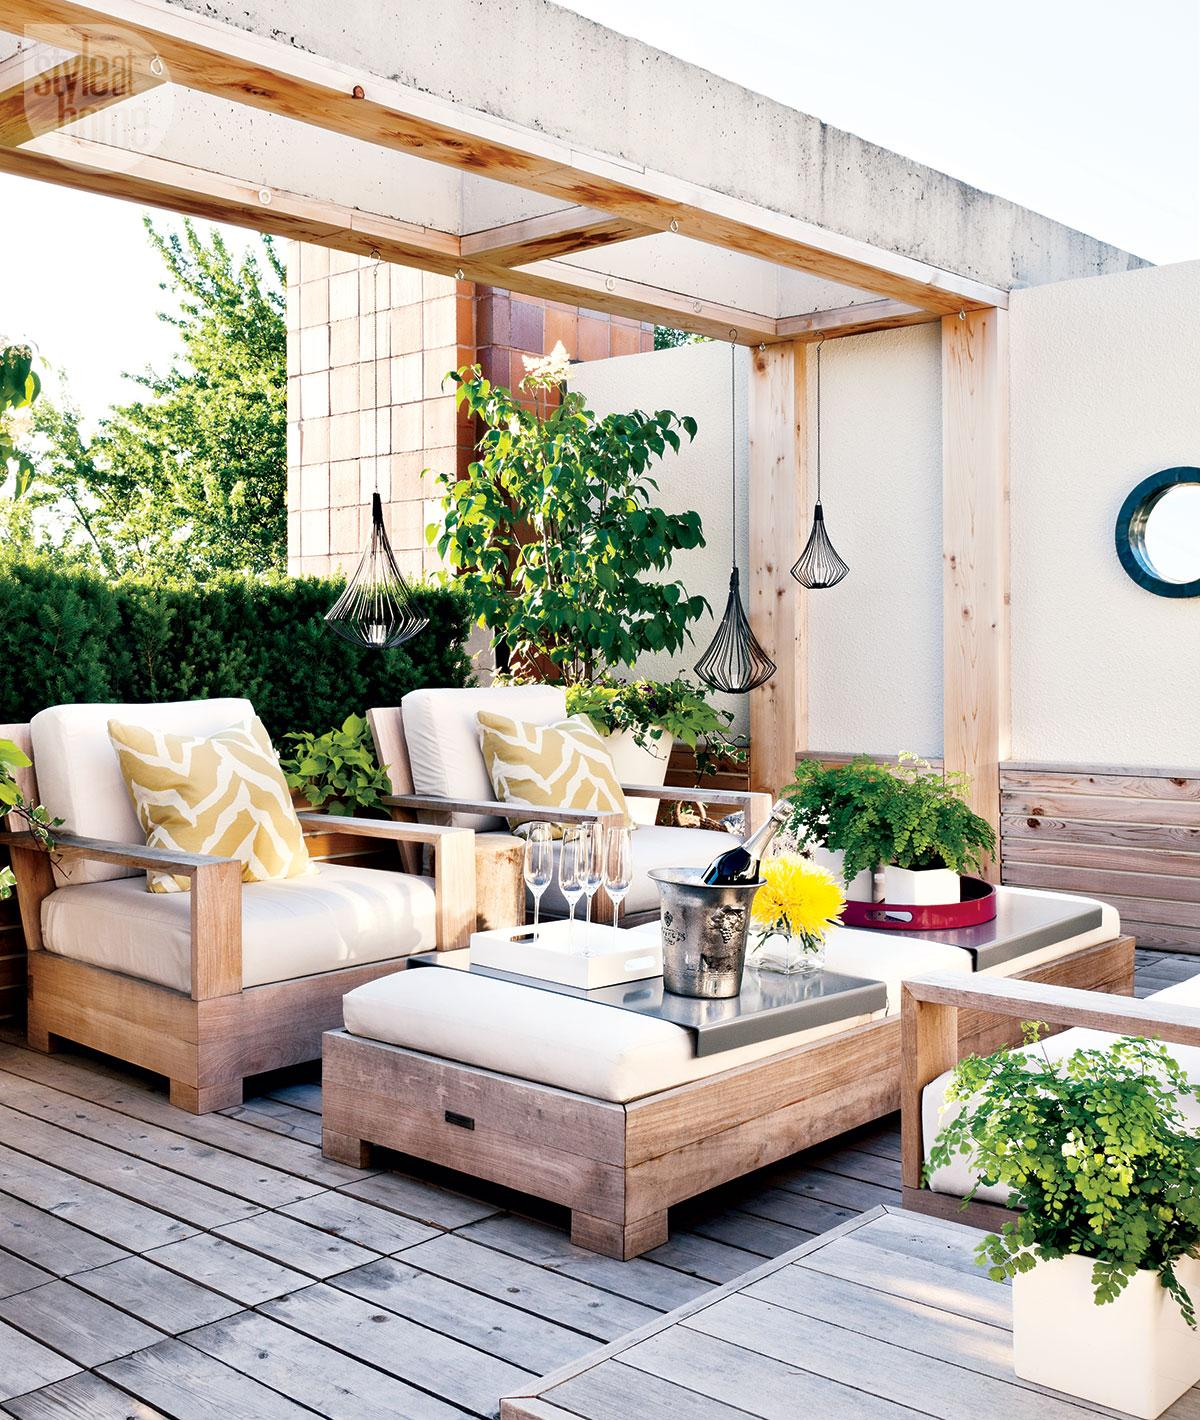 50 Best Patio Ideas For Design Inspiration for 2020 on Patio Top Ideas id=78241